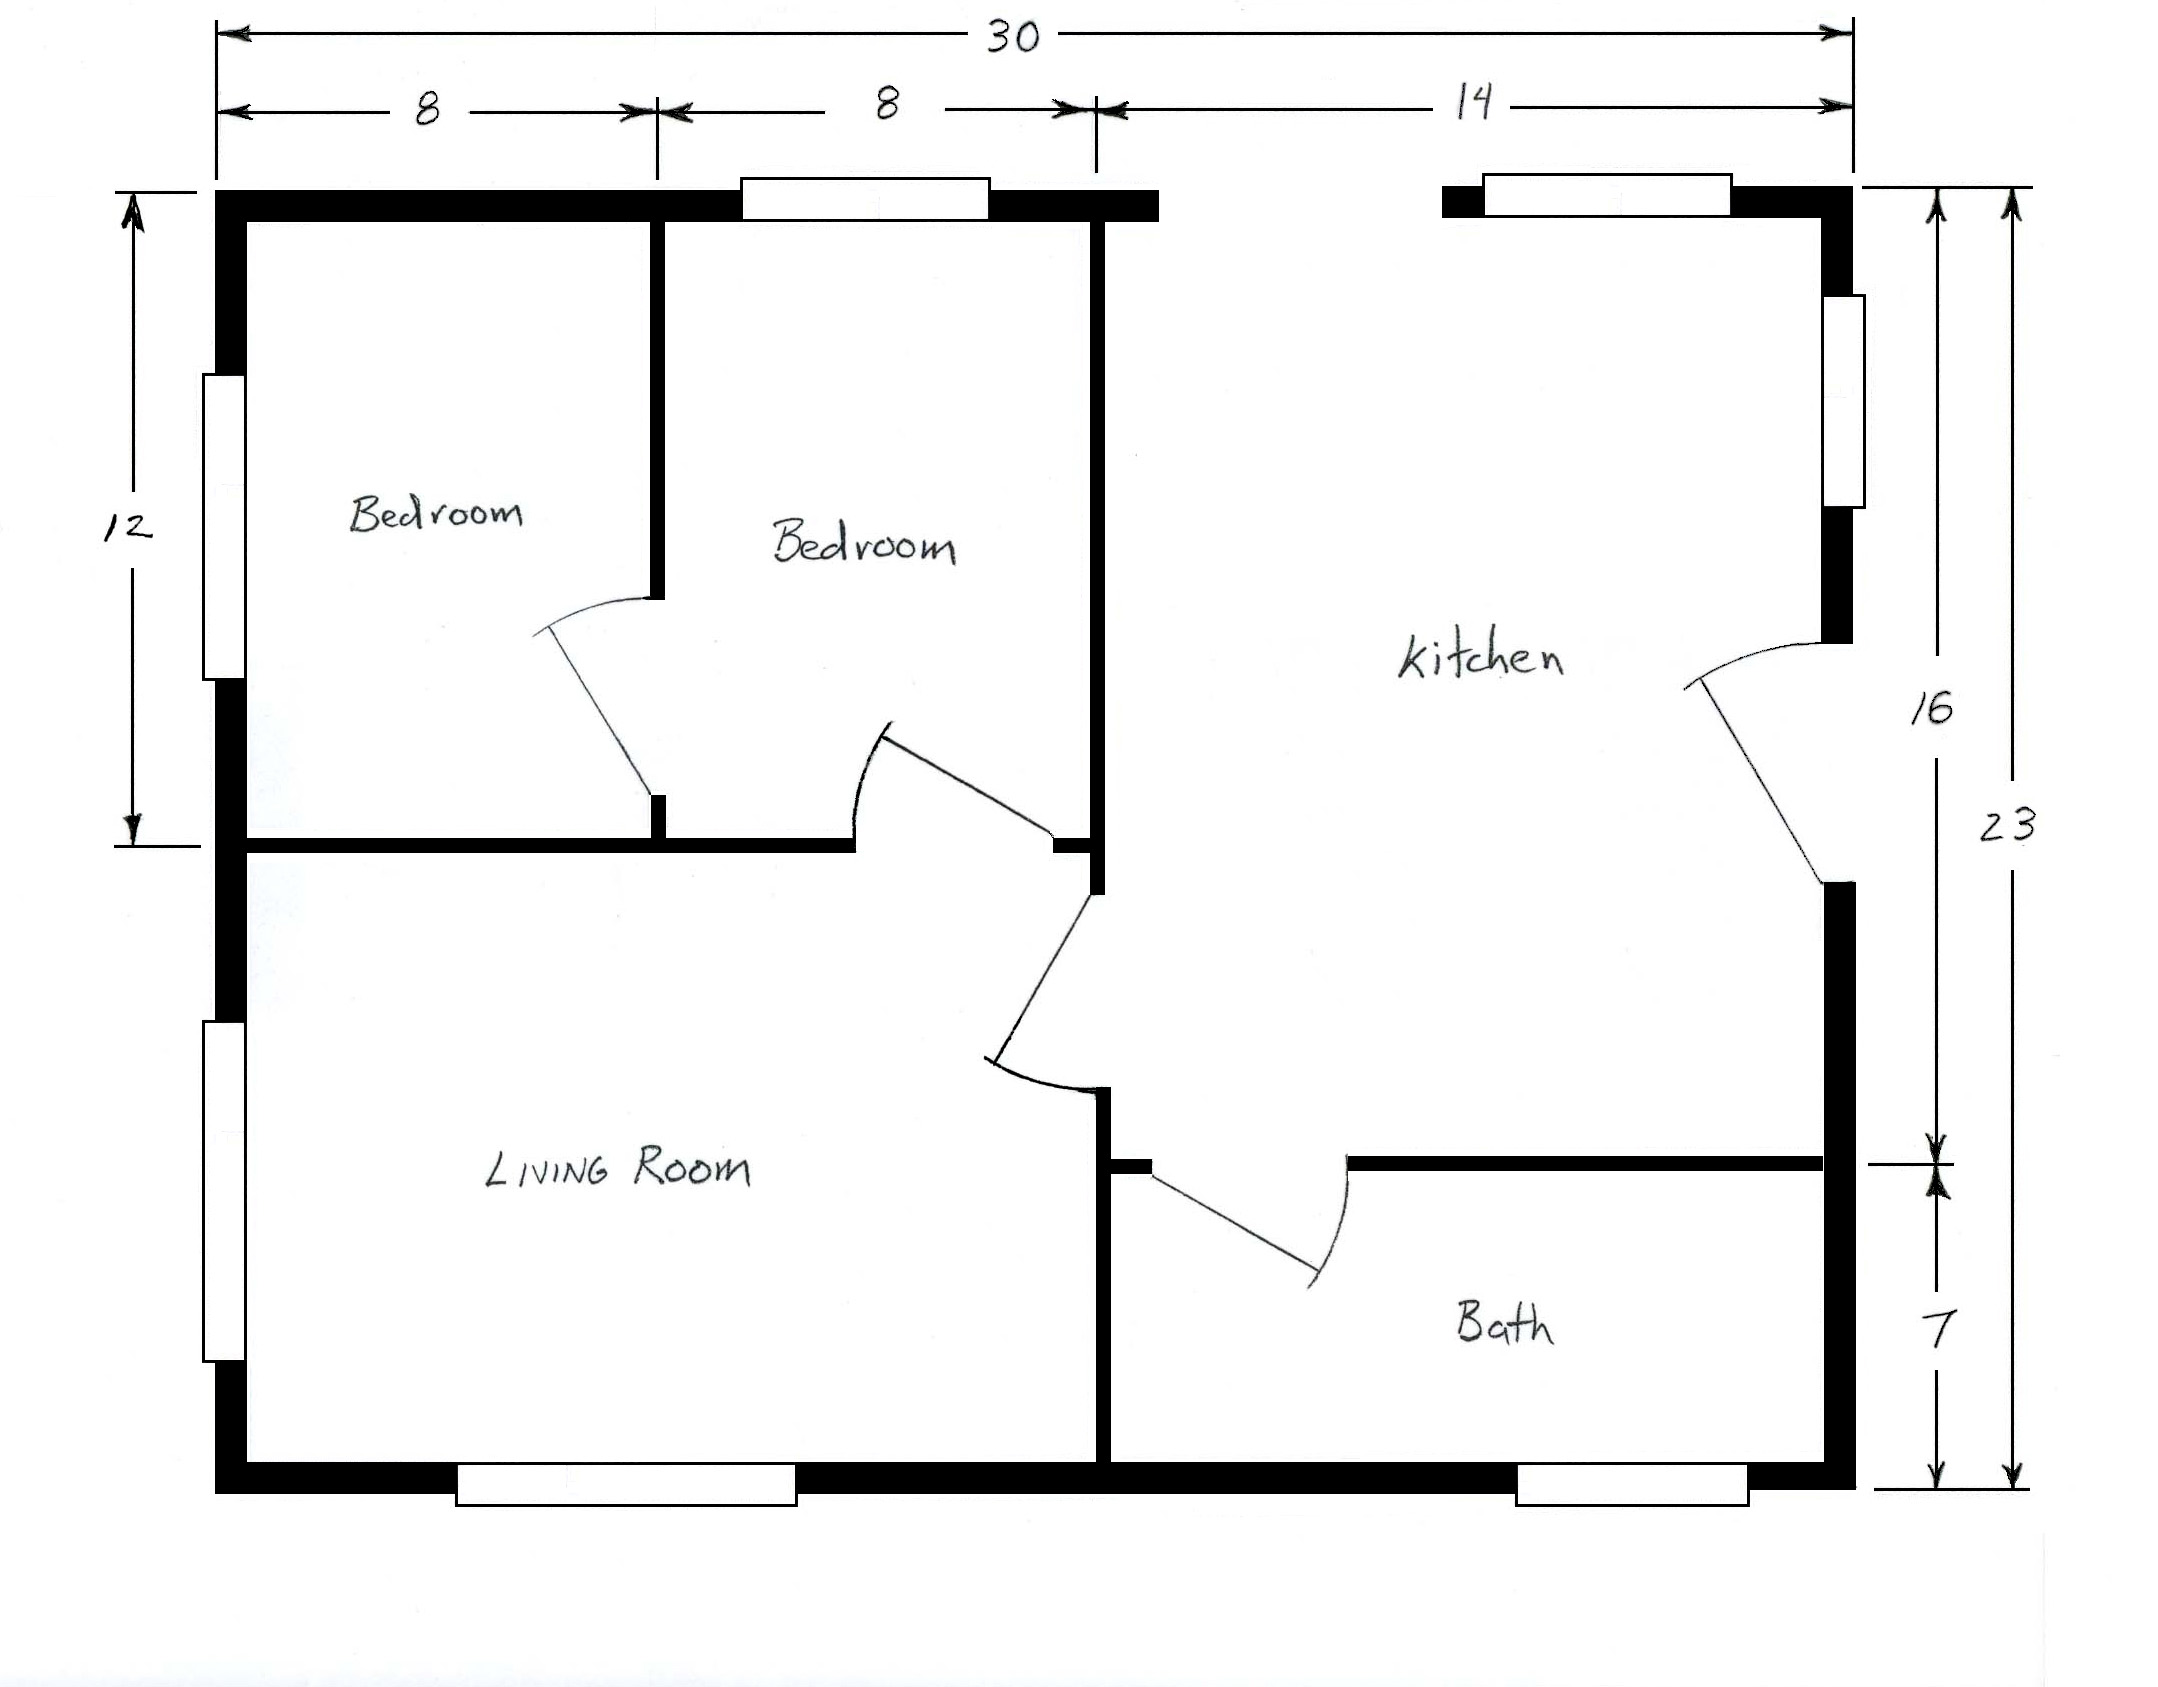 Free home plans sample house floor plans House plan sample